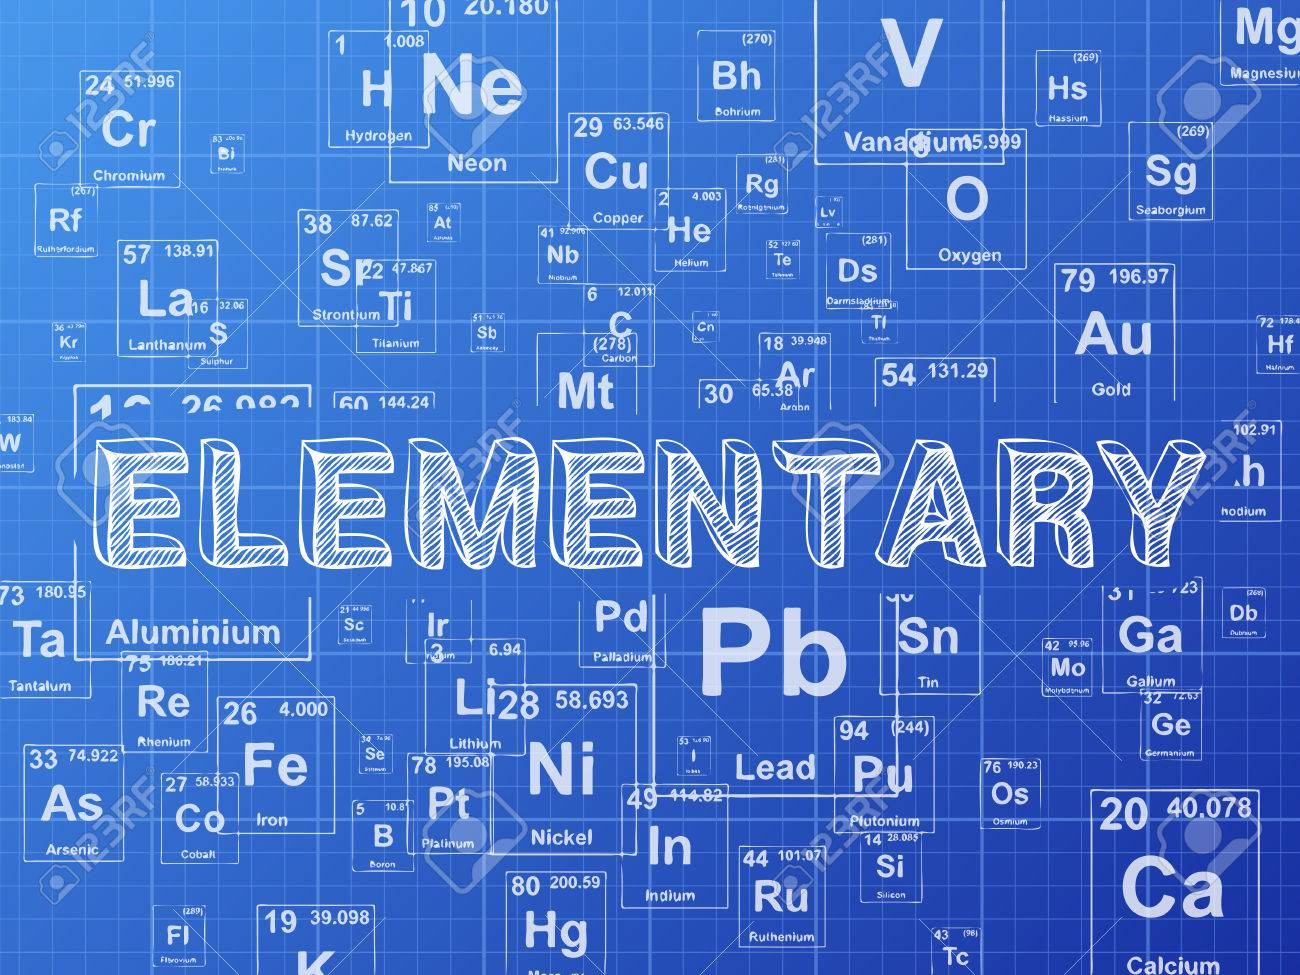 Elementary periodic table image collections periodic table images elementary word on periodic table symbols blueprint background elementary word on periodic table symbols blueprint background gamestrikefo Choice Image